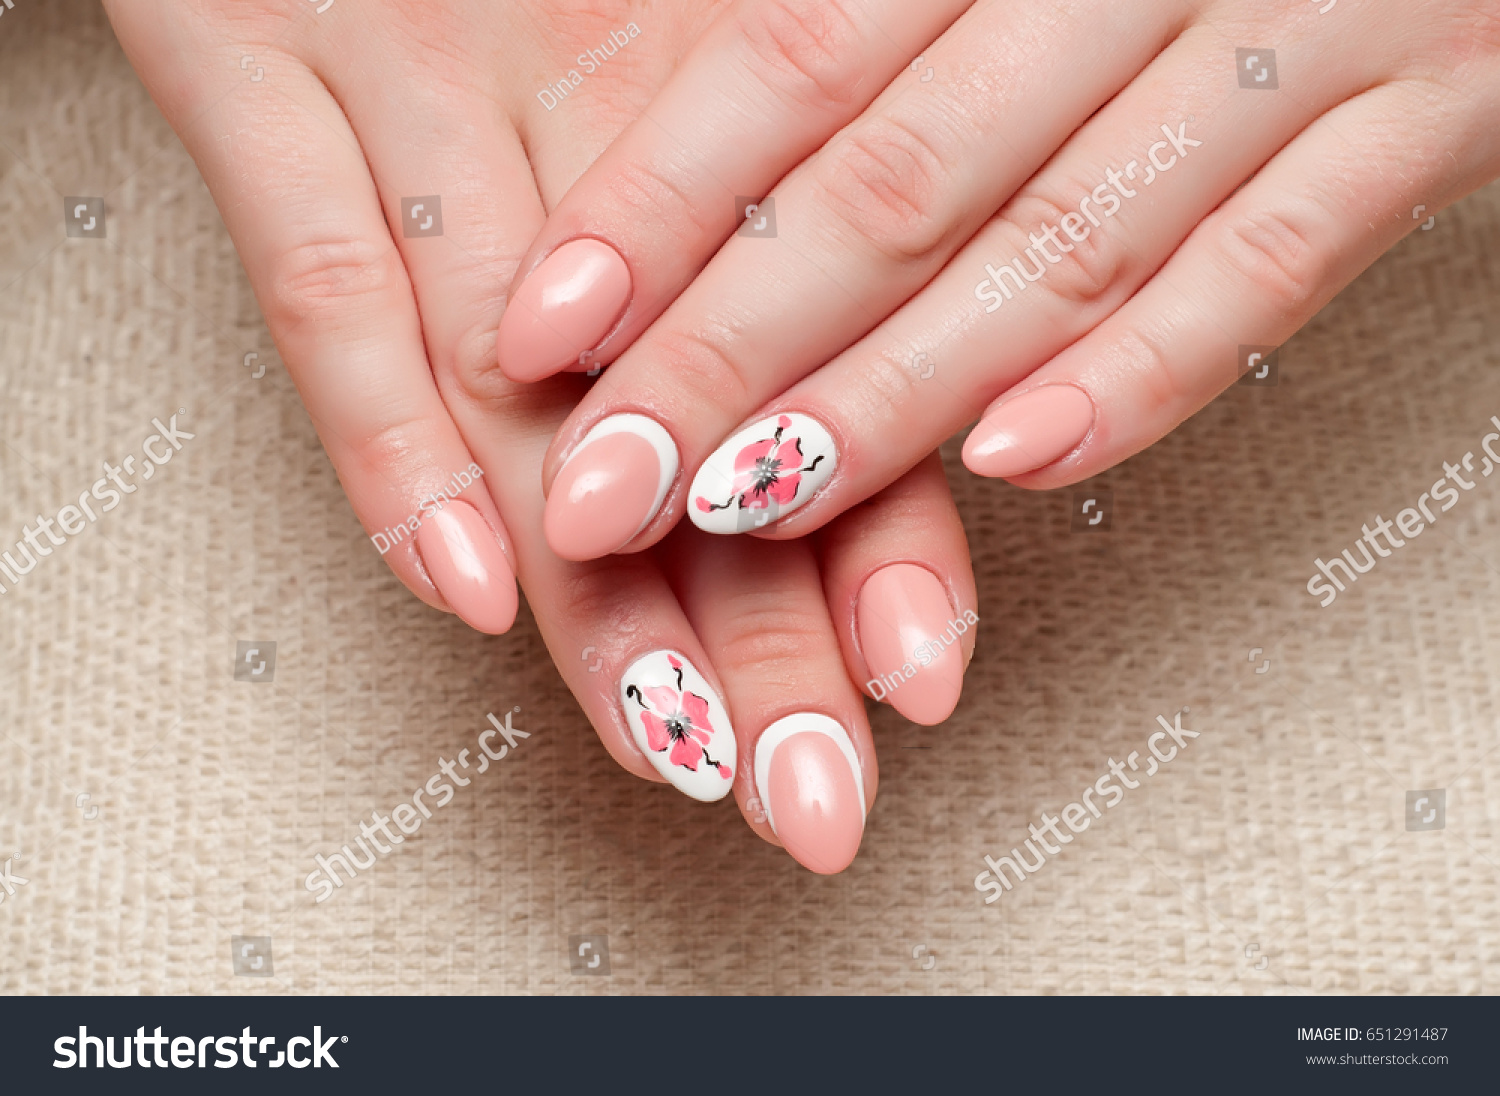 Pink Manicure Long Pointed Nails Manicure Stock Photo (Royalty Free ...